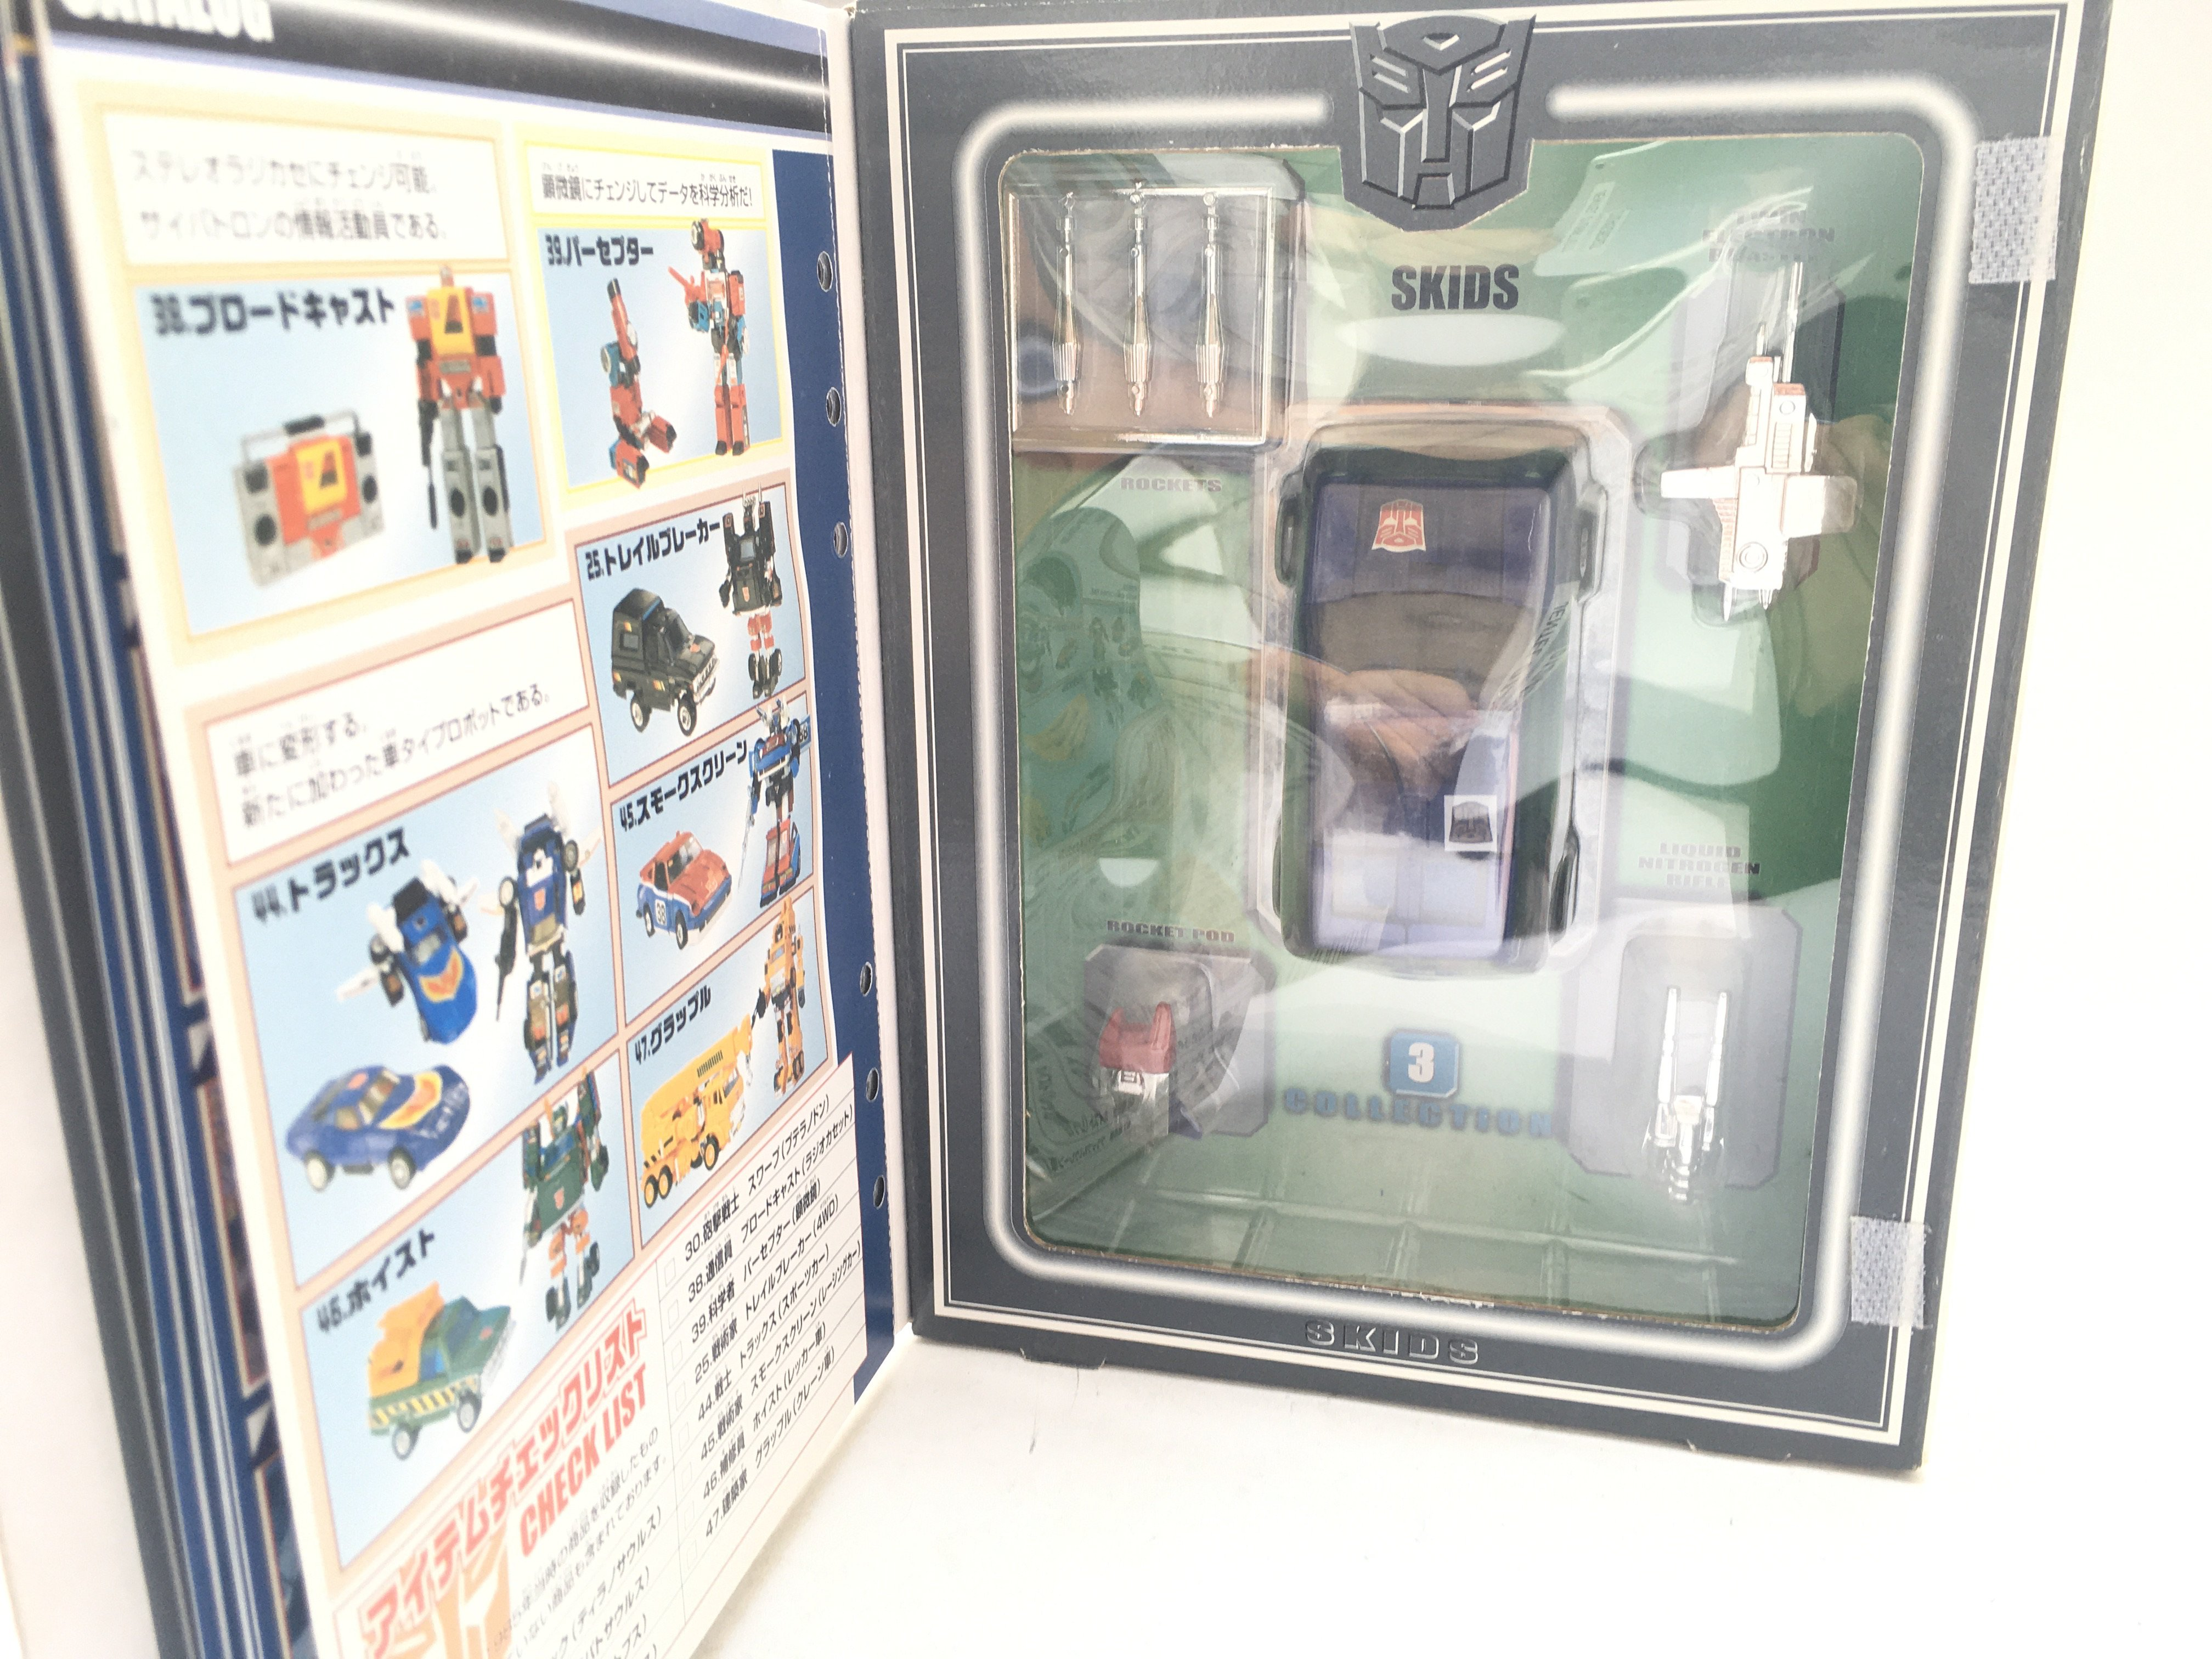 A Boxed Takara Transformers #3 Skids. - Image 2 of 2